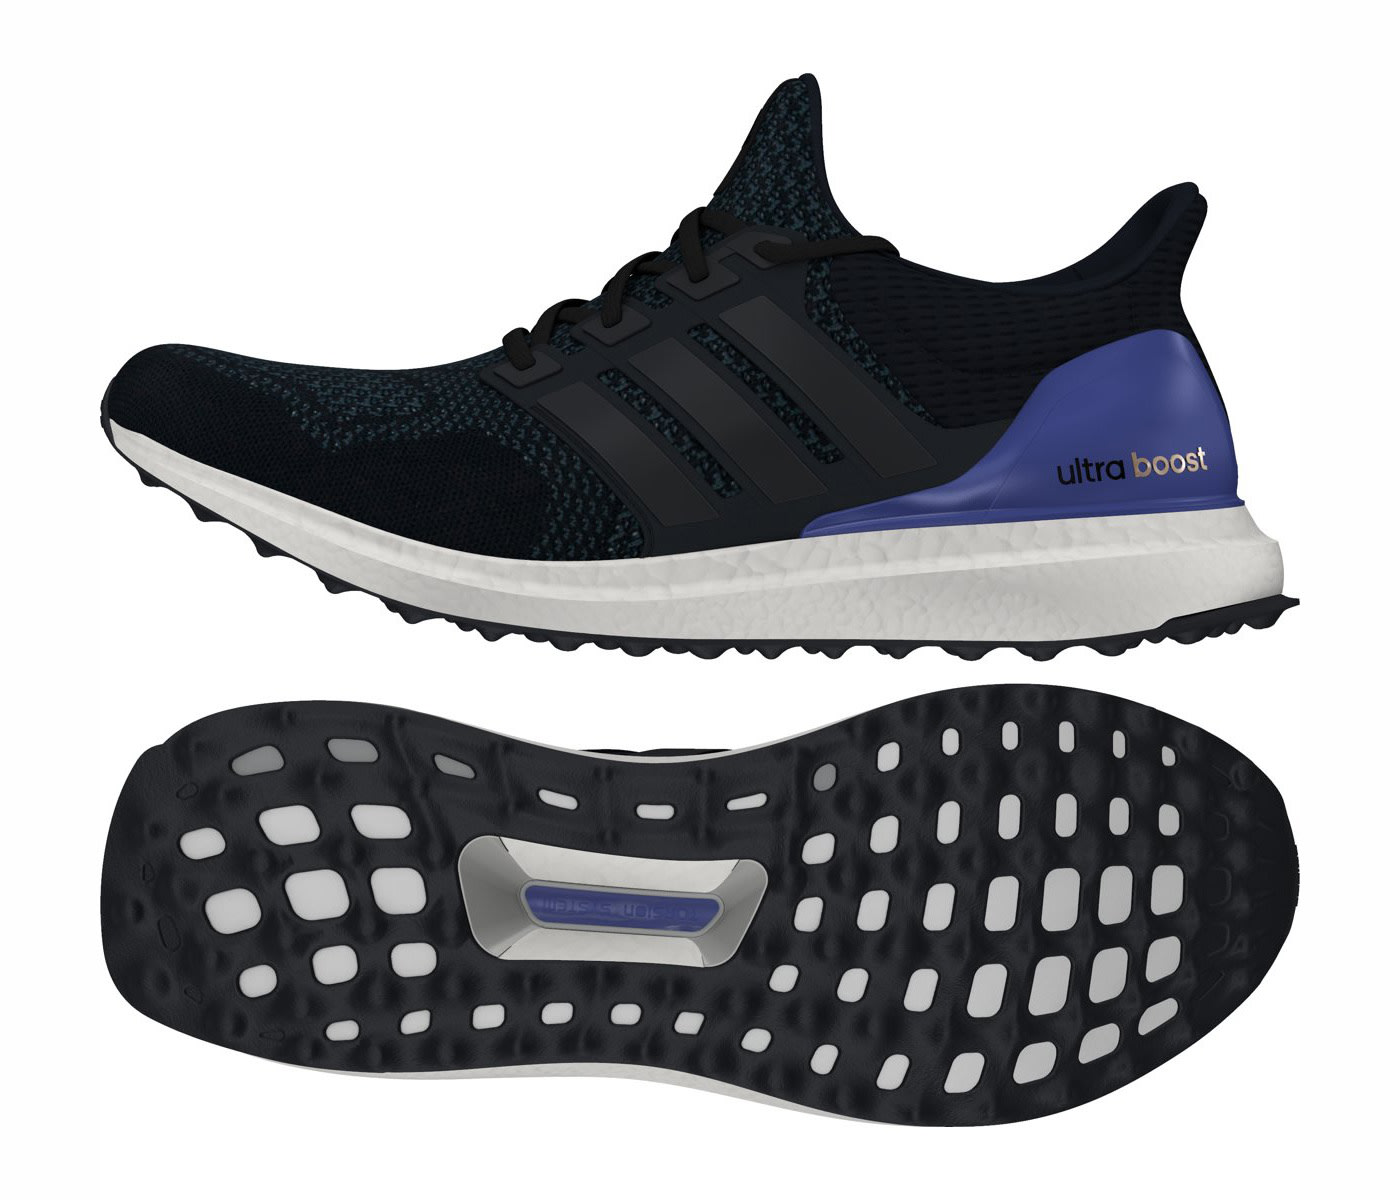 215046bf10b get image via rev up sports adidas ultra boost og lateral sole 8b6b2 82326